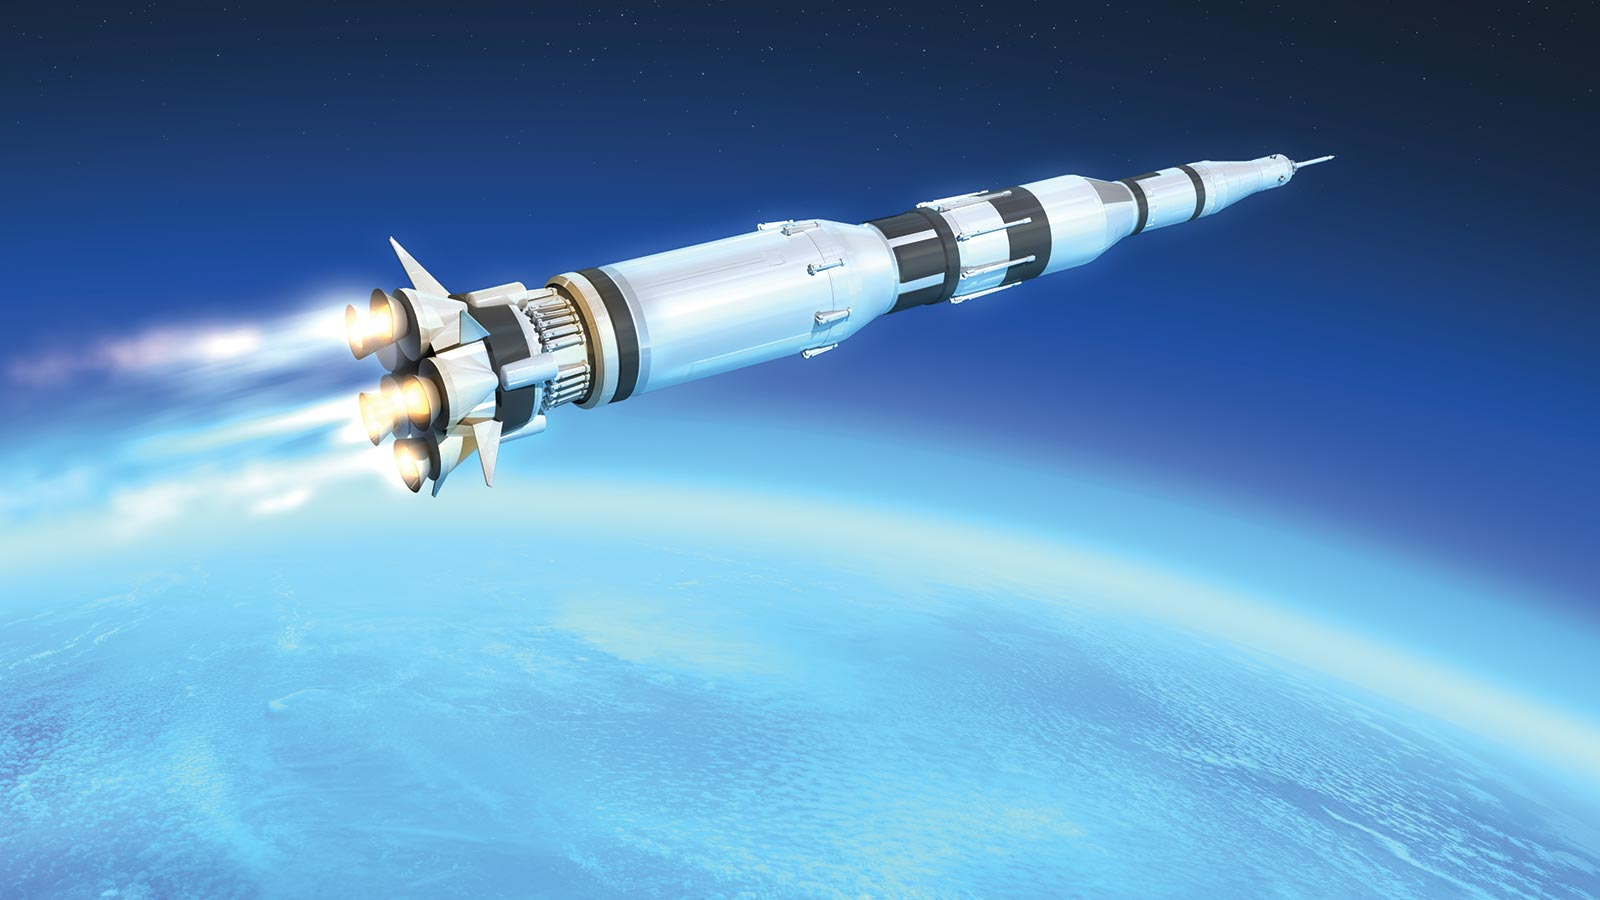 Isar Aerospace Begins Production on First Carrier Rocket to Launch Satellites